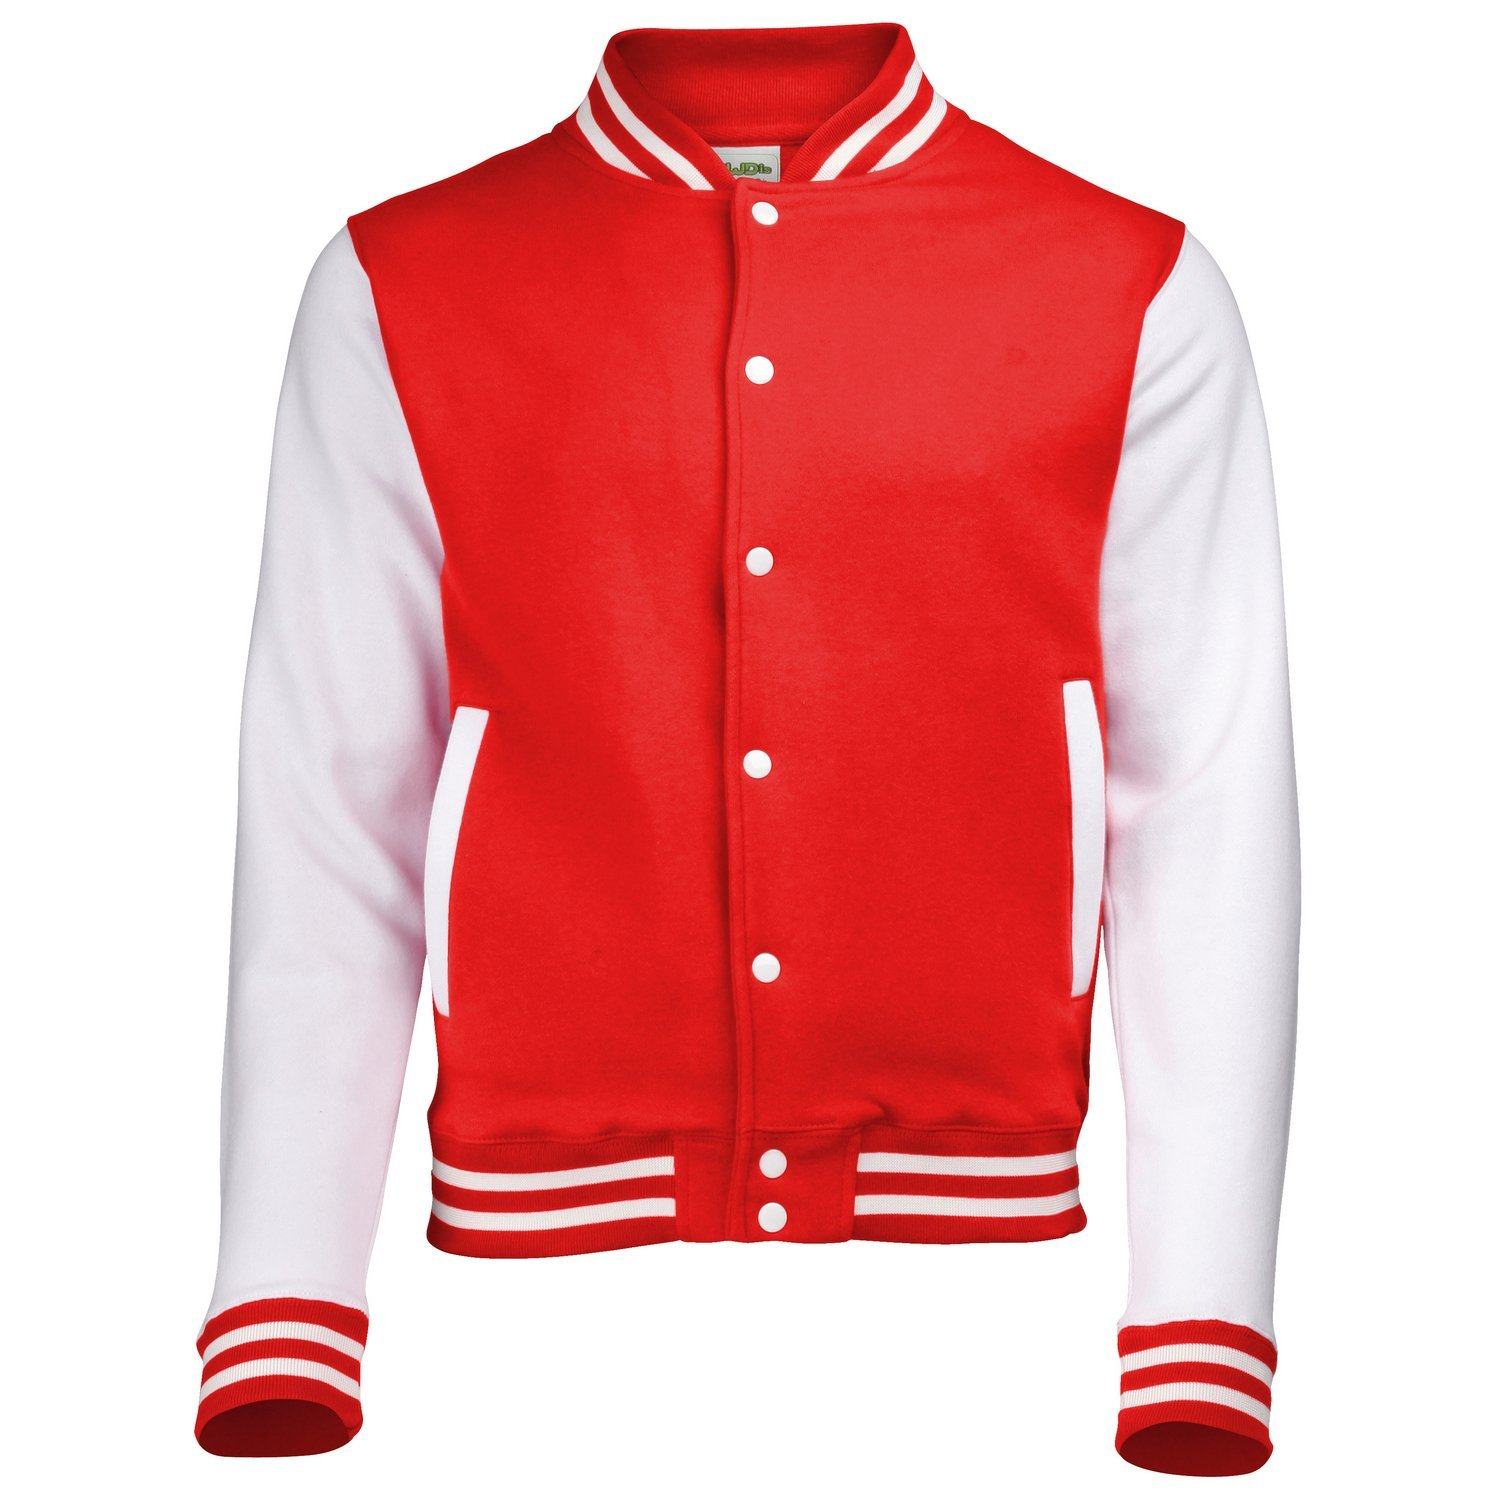 AWDis Hoods Varsity Letterman jacket Fire Red / White M by AWDis Hoods